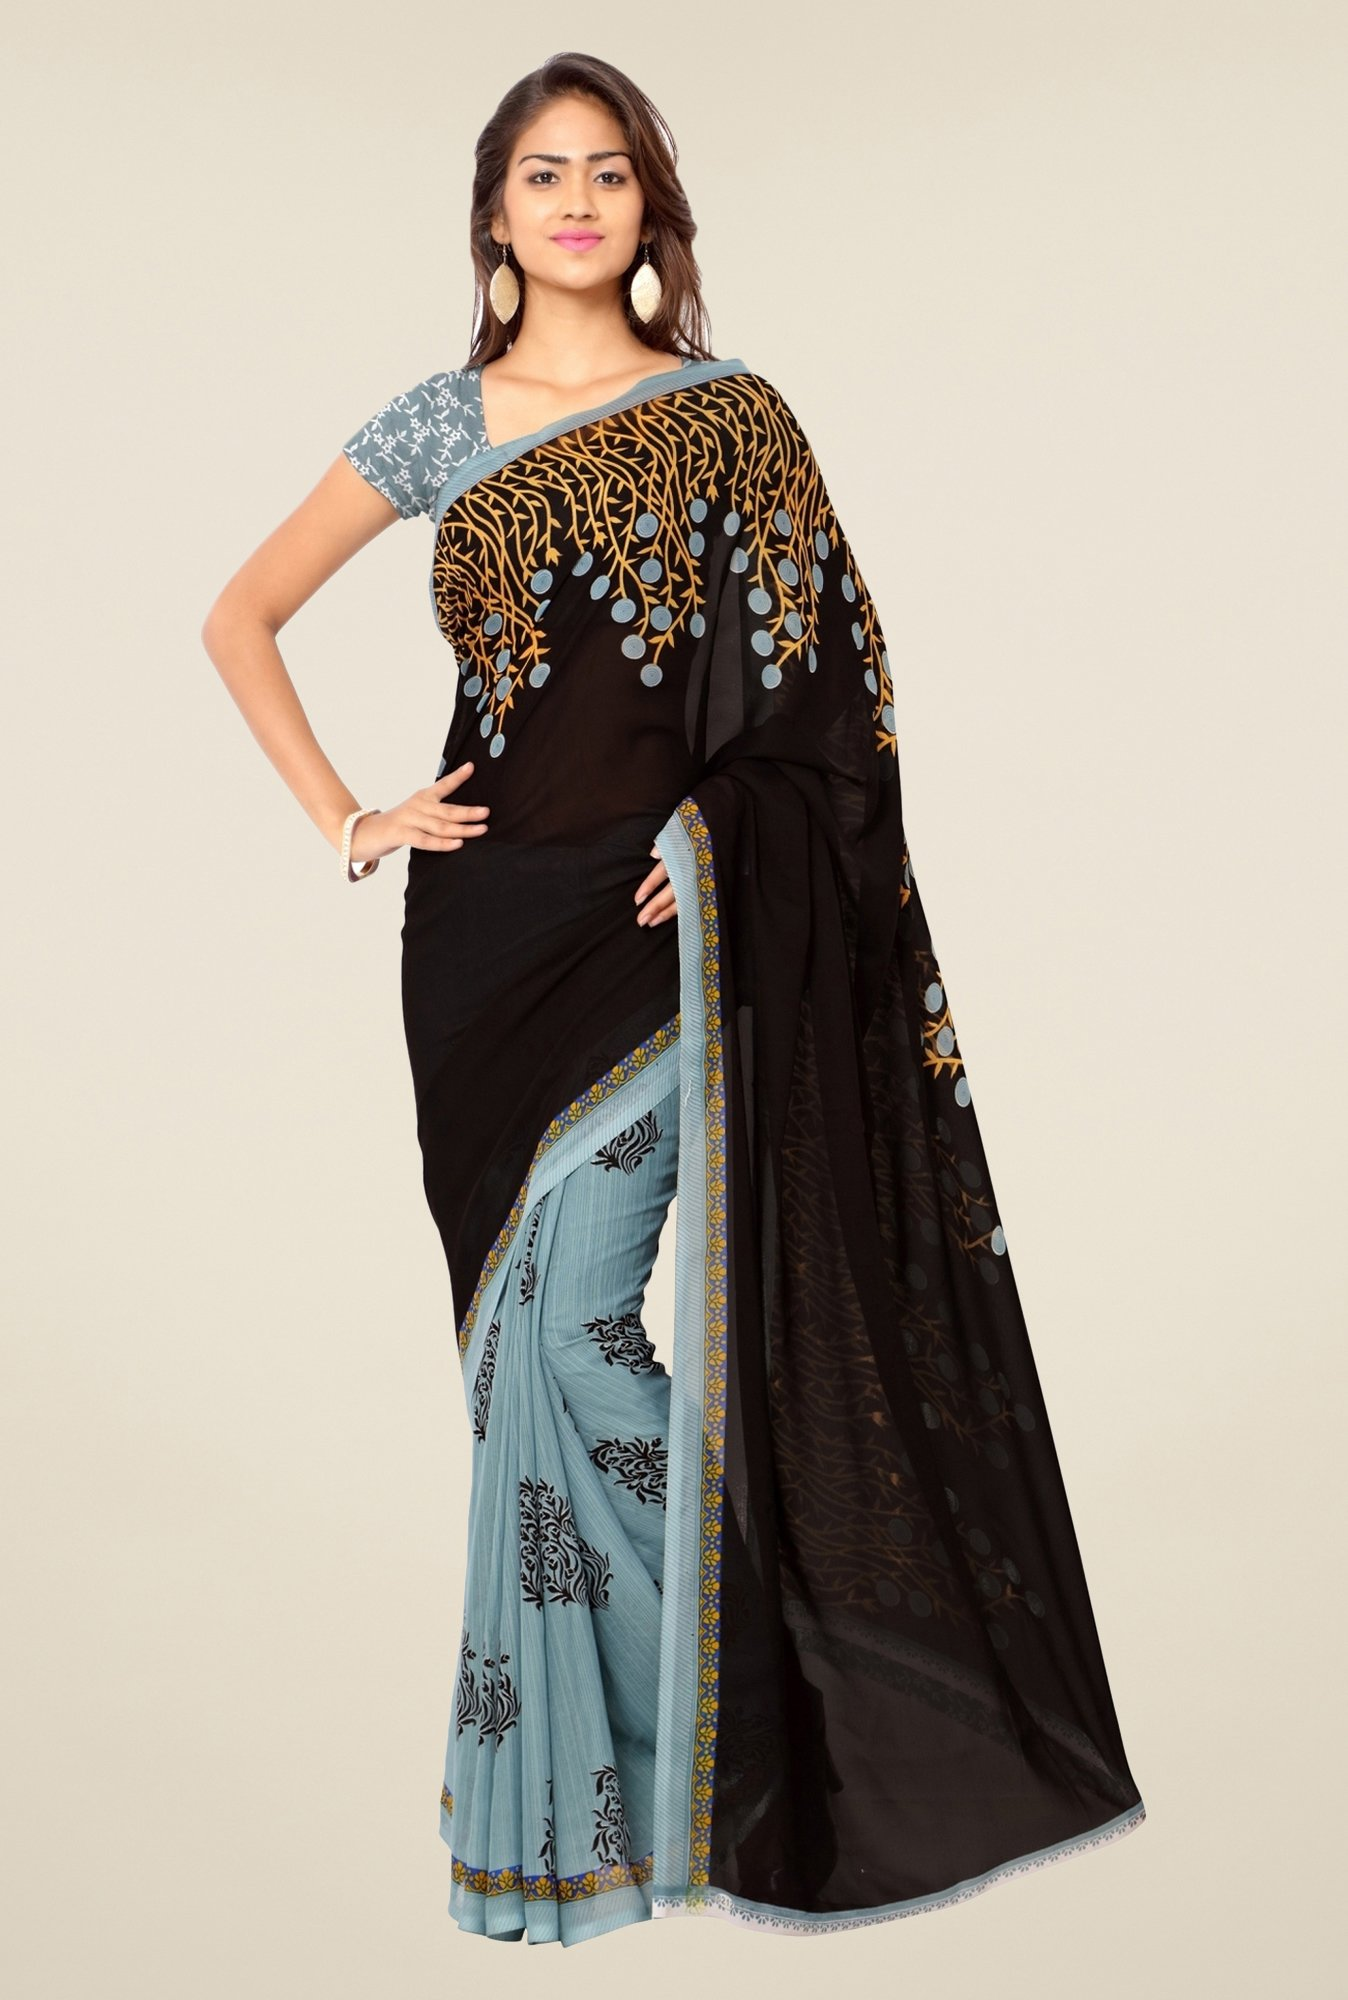 Triveni Grey & Black Printed Faux Georgette Saree